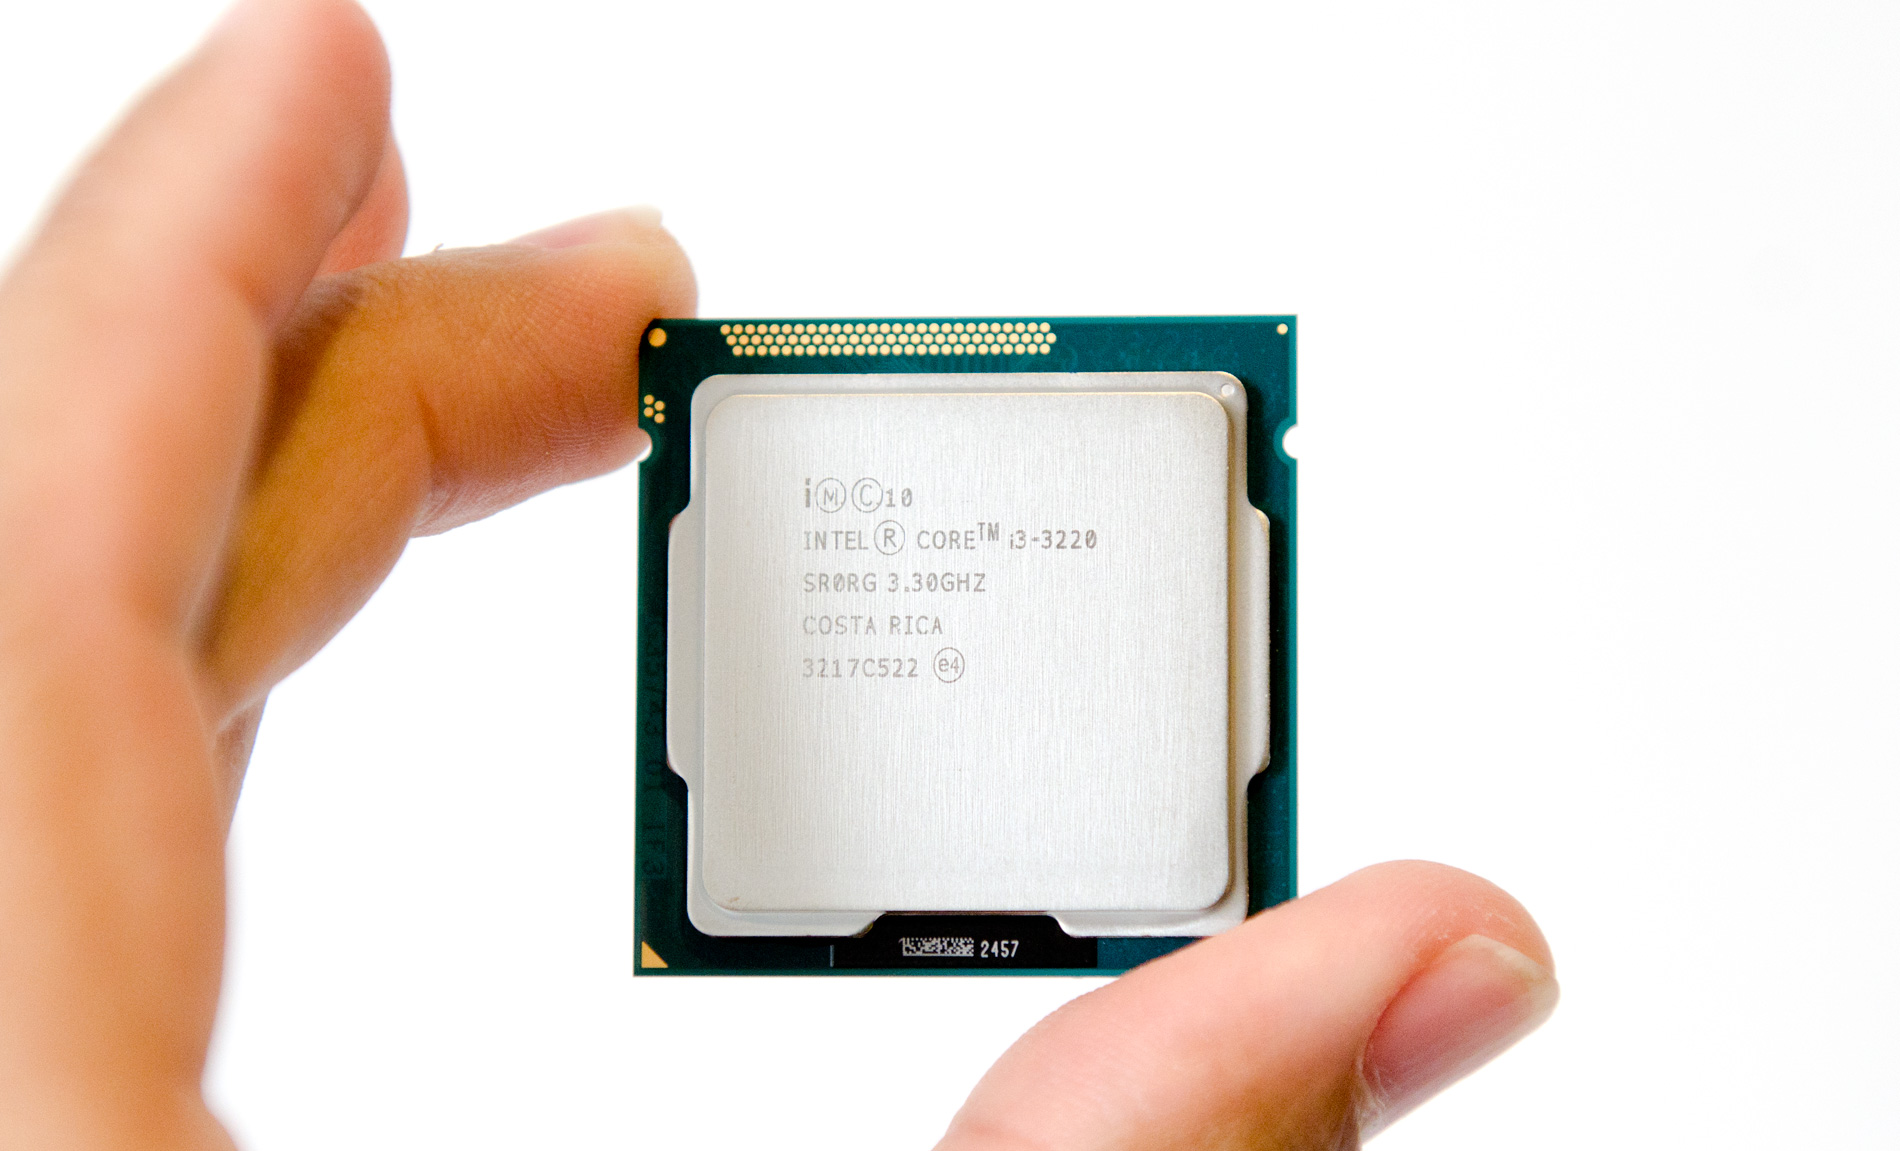 AMD A10-5800K APU DESKTOP PROCESSOR DRIVER